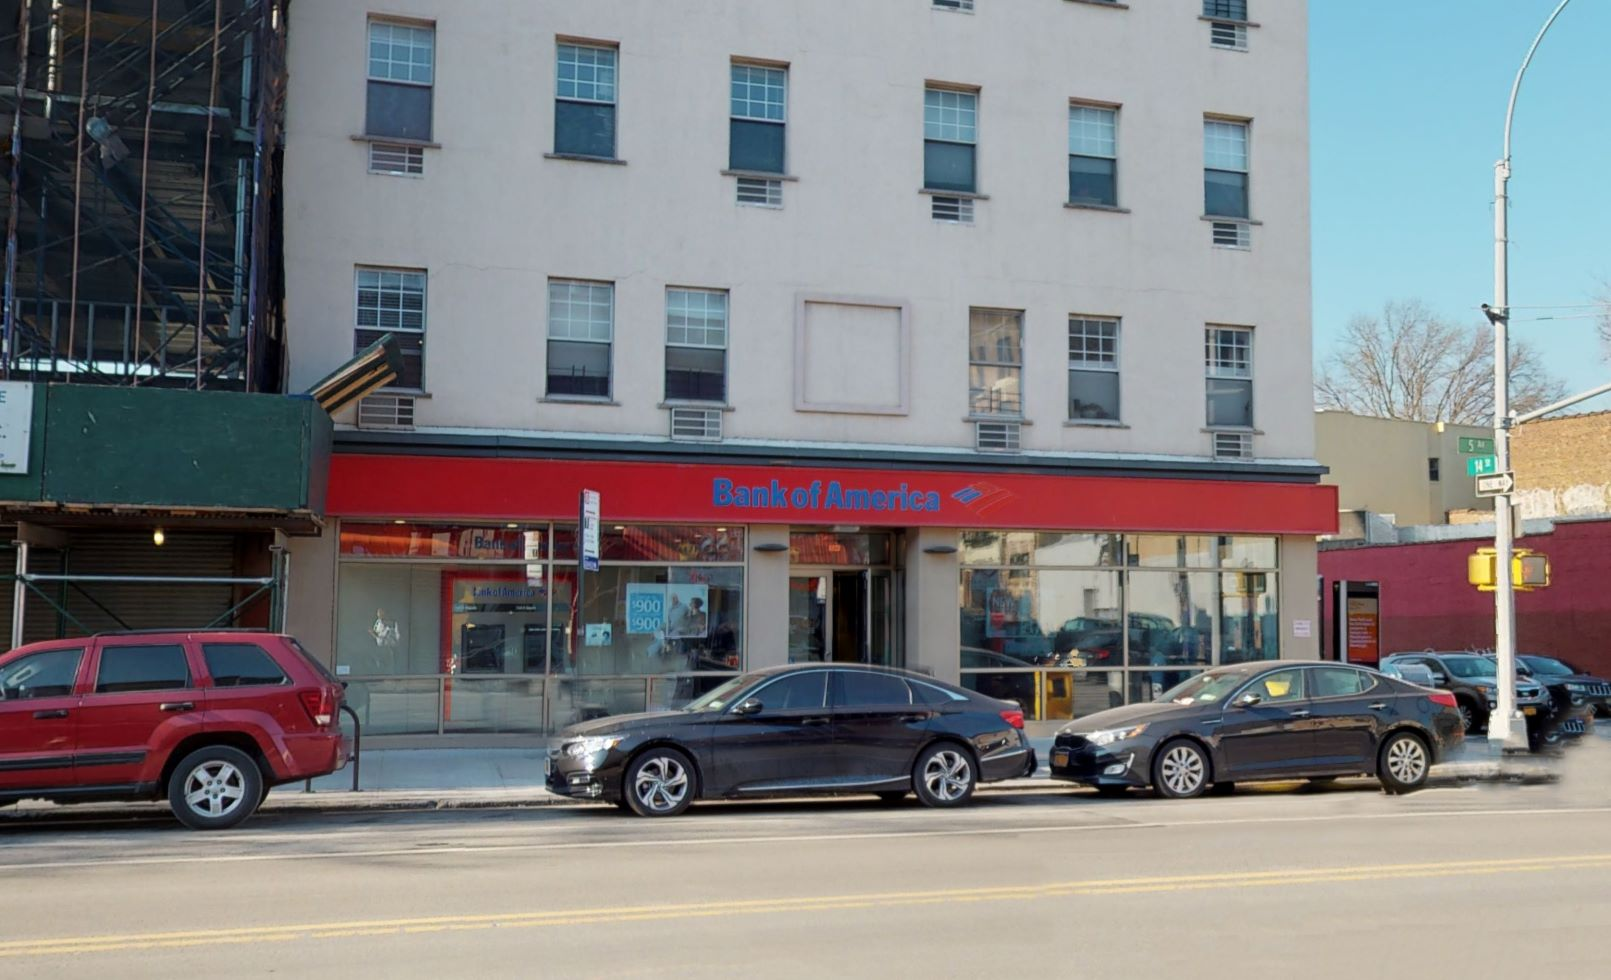 Bank of America financial center with walk-up ATM | 534 5th Ave, Brooklyn, NY 11215